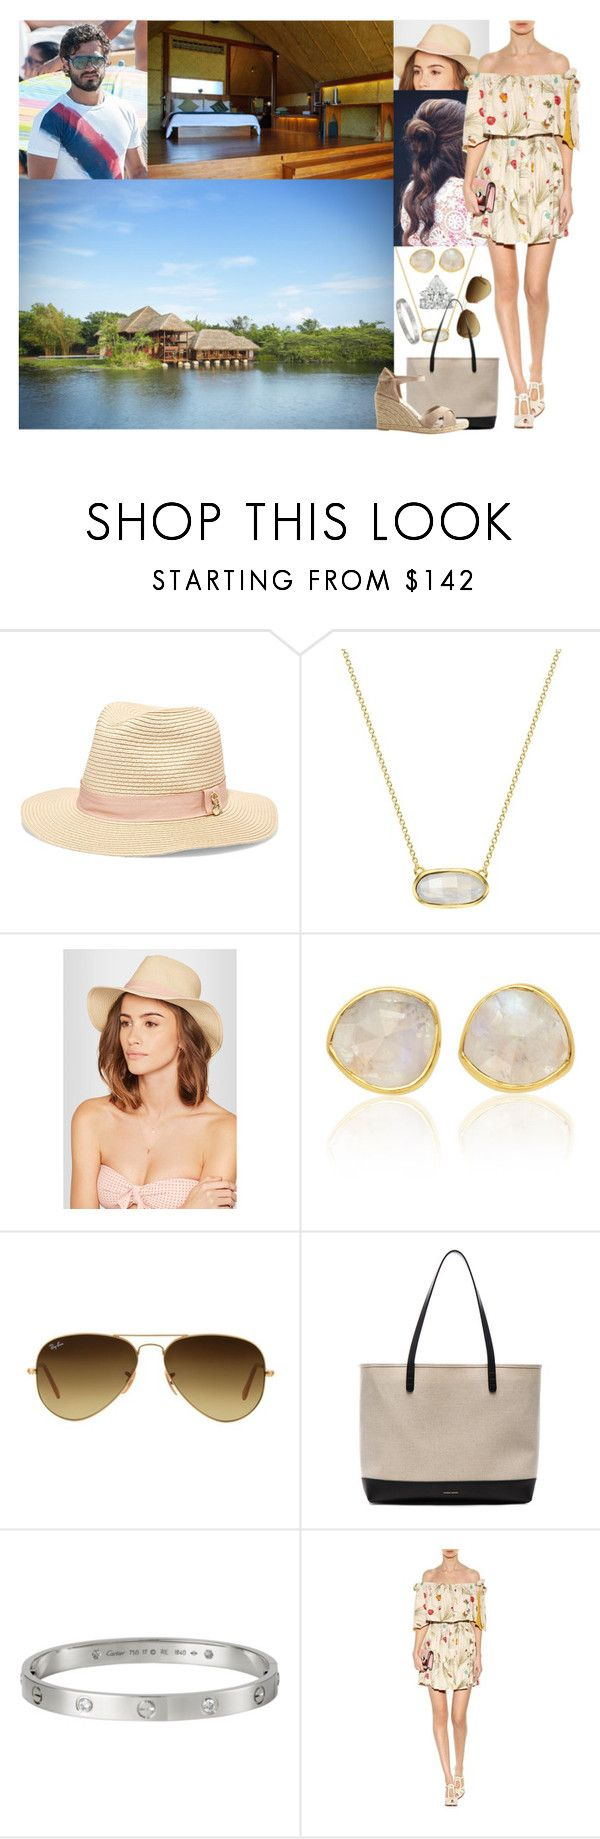 Arriving in Sigiriya, Sri Lanka for their Honeymoon & Settling into their Villa at the Resort Vil Uyana + Relaxing the Entire Day by louiseingrid-ofdenmark on Polyvore featuring Fendi, Castañer, Mansur Gavriel, Monica Vinader, Melissa Odabash, Ray-Ban, bedroom, rustic and country